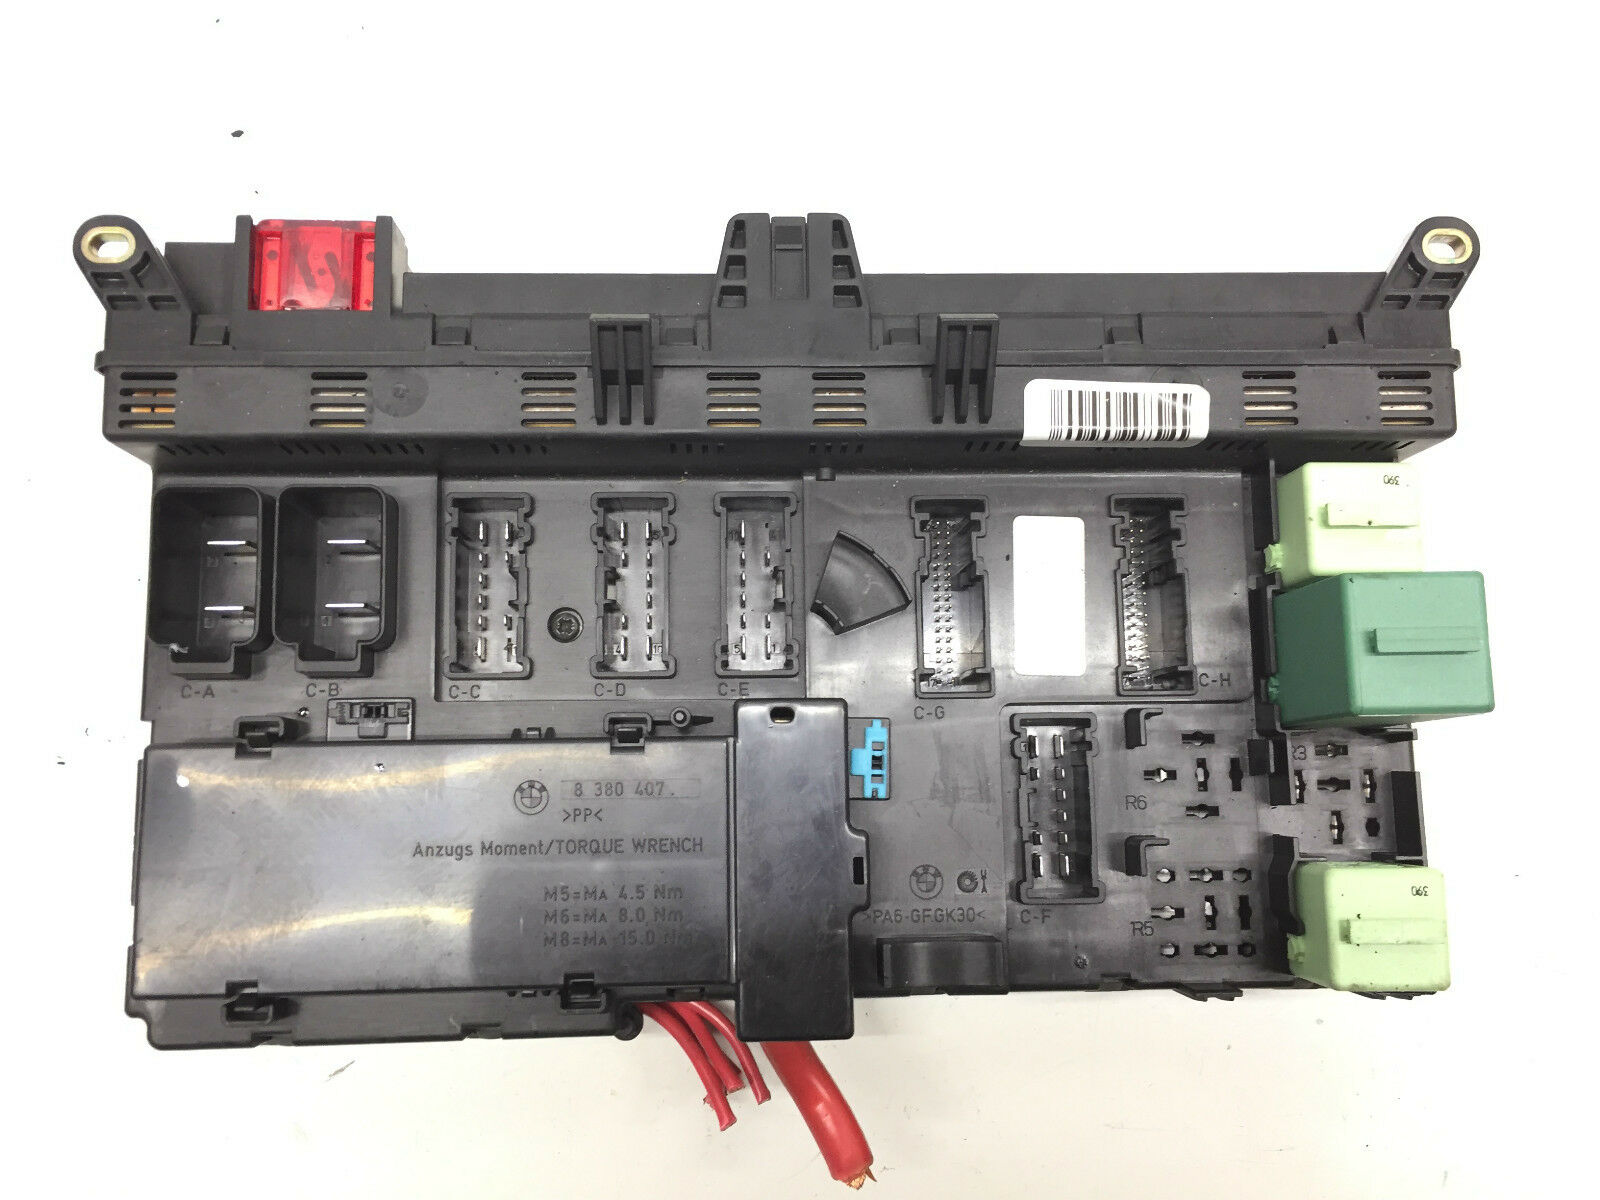 Bmw X5 E53 M62 44i Engine Fuse Box Relay 6907395 2137 Picclick Uk M6 1 Of 1only Available